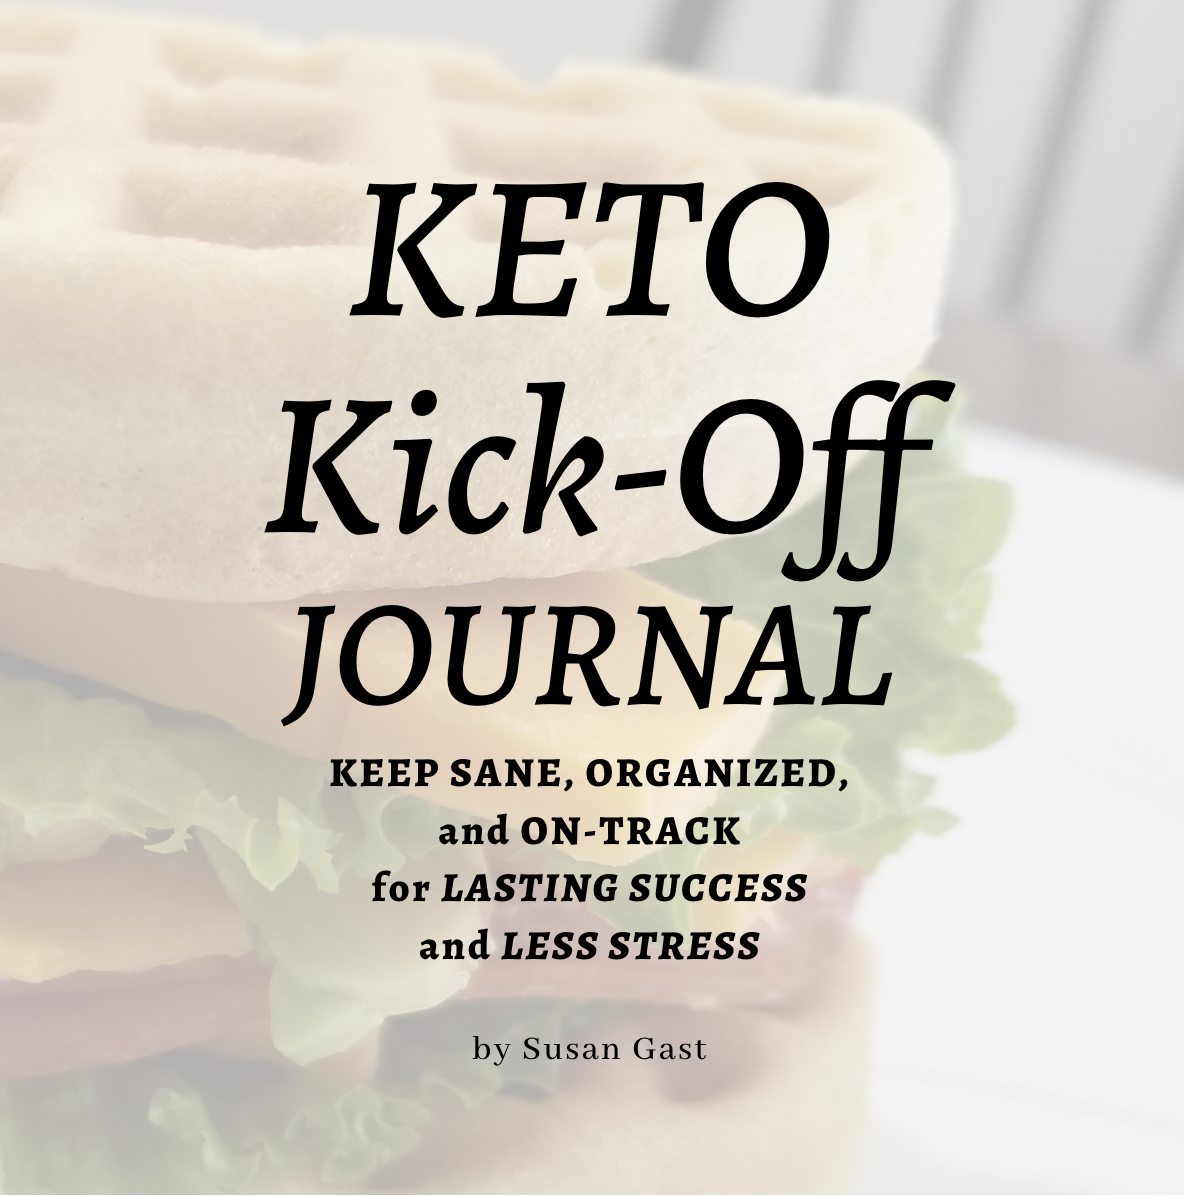 Keto Kick-Off Journal